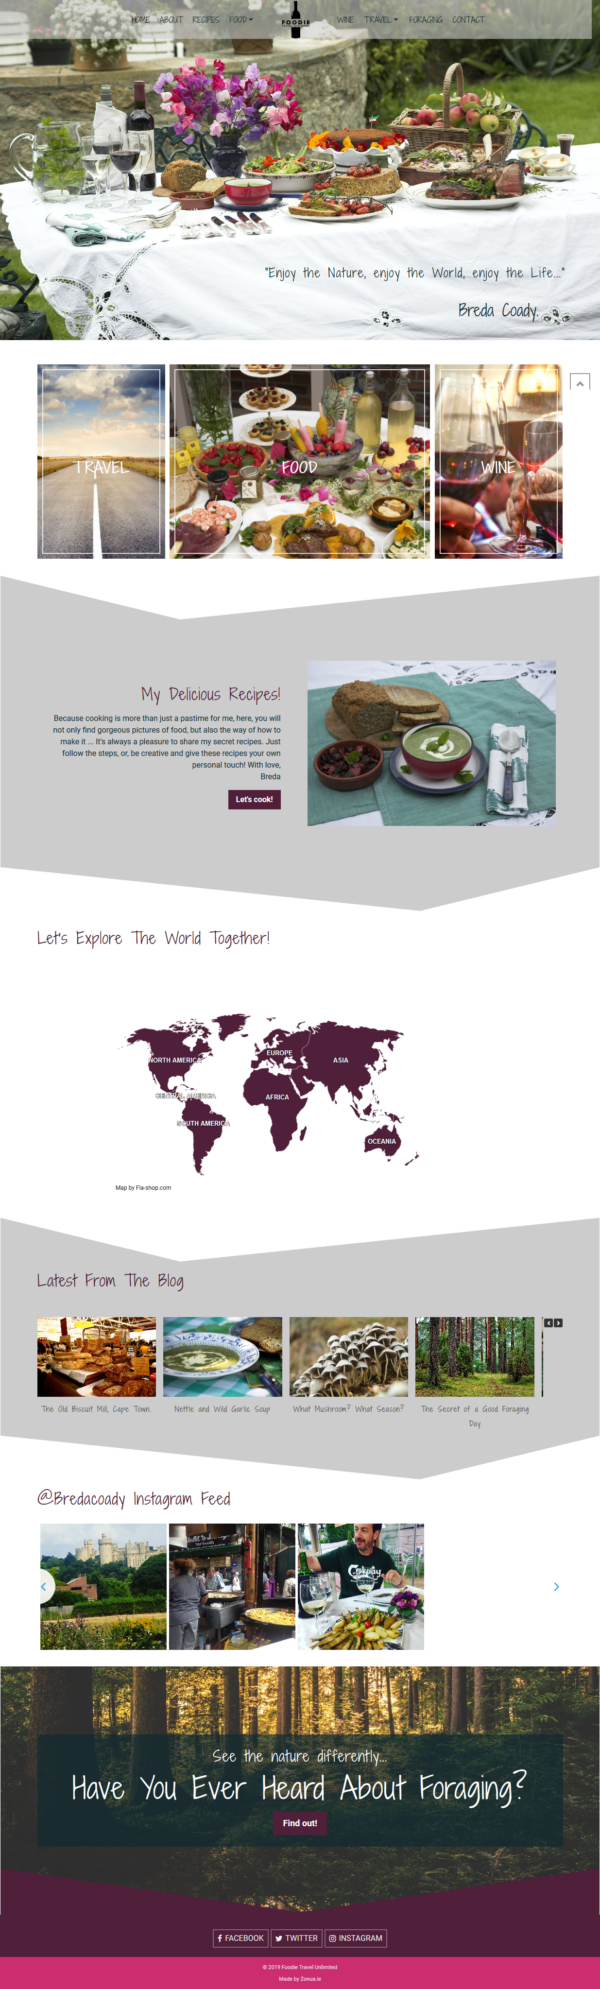 wordpress website for food and travel blogger by zonua